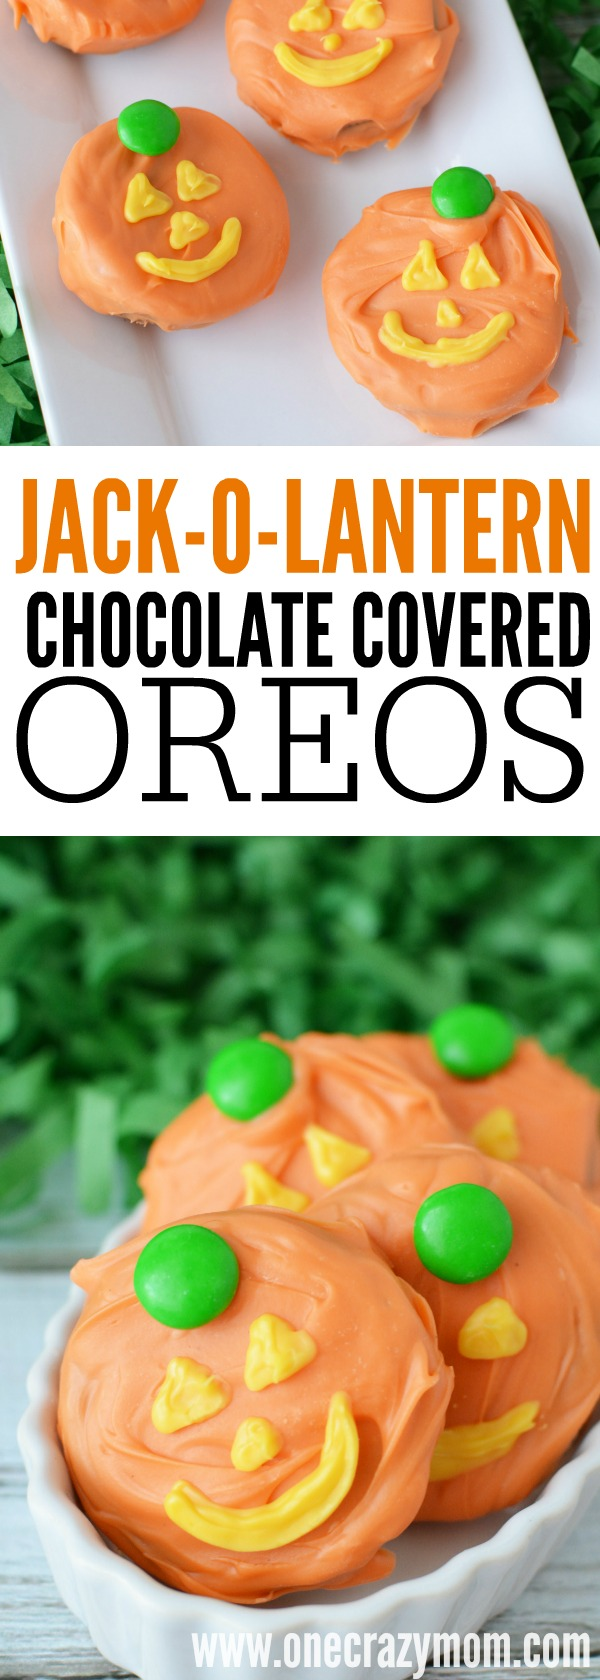 Try these Jack-O-Lantern Chocolate Covered Oreos for a festive Halloween treat.These Jack-O-Lantern Chocolate Dipped Oreo Cookies are easy to make and yummy